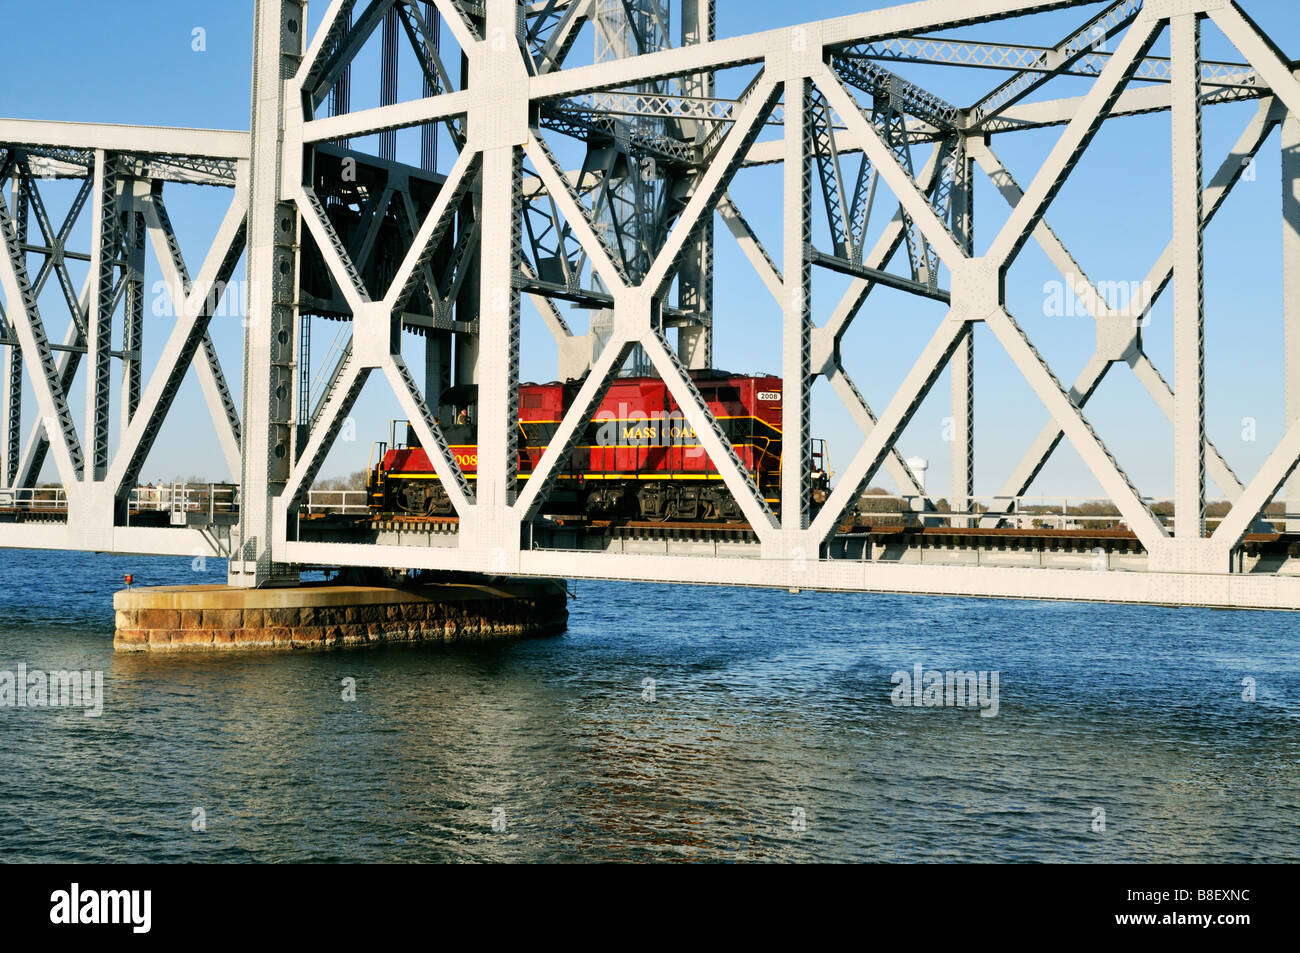 Train engine crossing the waters of the 'Cape Cod Canal' over a 'vertical lift' railroad bridge - Stock Image